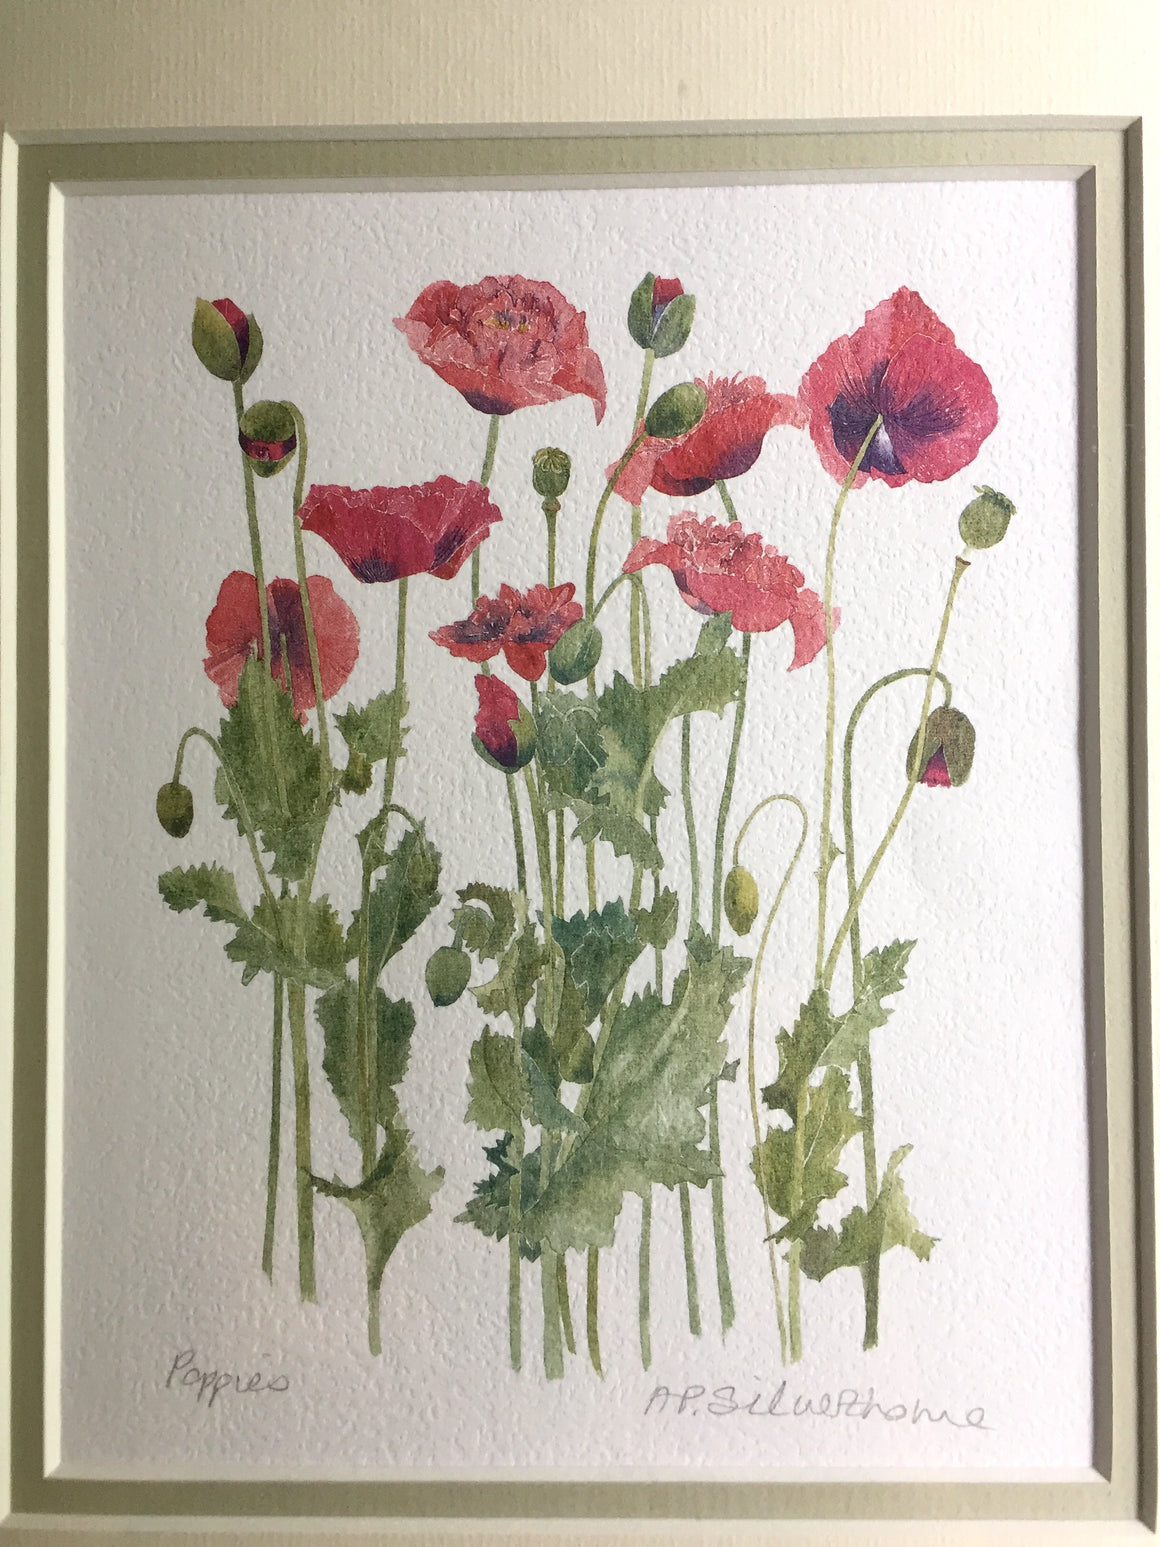 Authentic PENNY SILVERTHORNE Signed Matted & Frame 'POPPIES' Watercolor Art Print